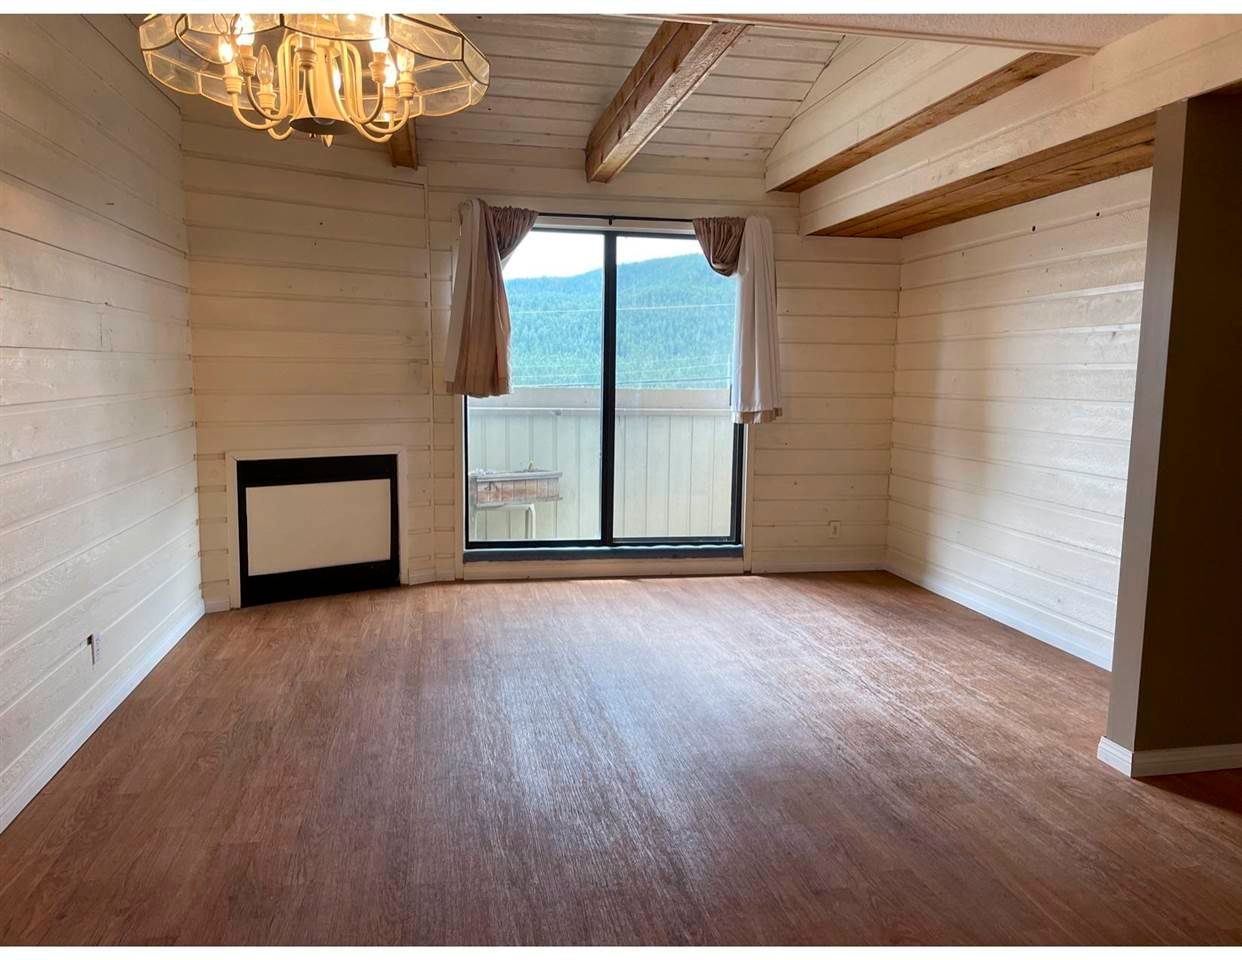 """Main Photo: 6 800 N 2ND Avenue in Williams Lake: Williams Lake - City Townhouse for sale in """"Highwood Park Townhomes"""" (Williams Lake (Zone 27))  : MLS®# R2591717"""